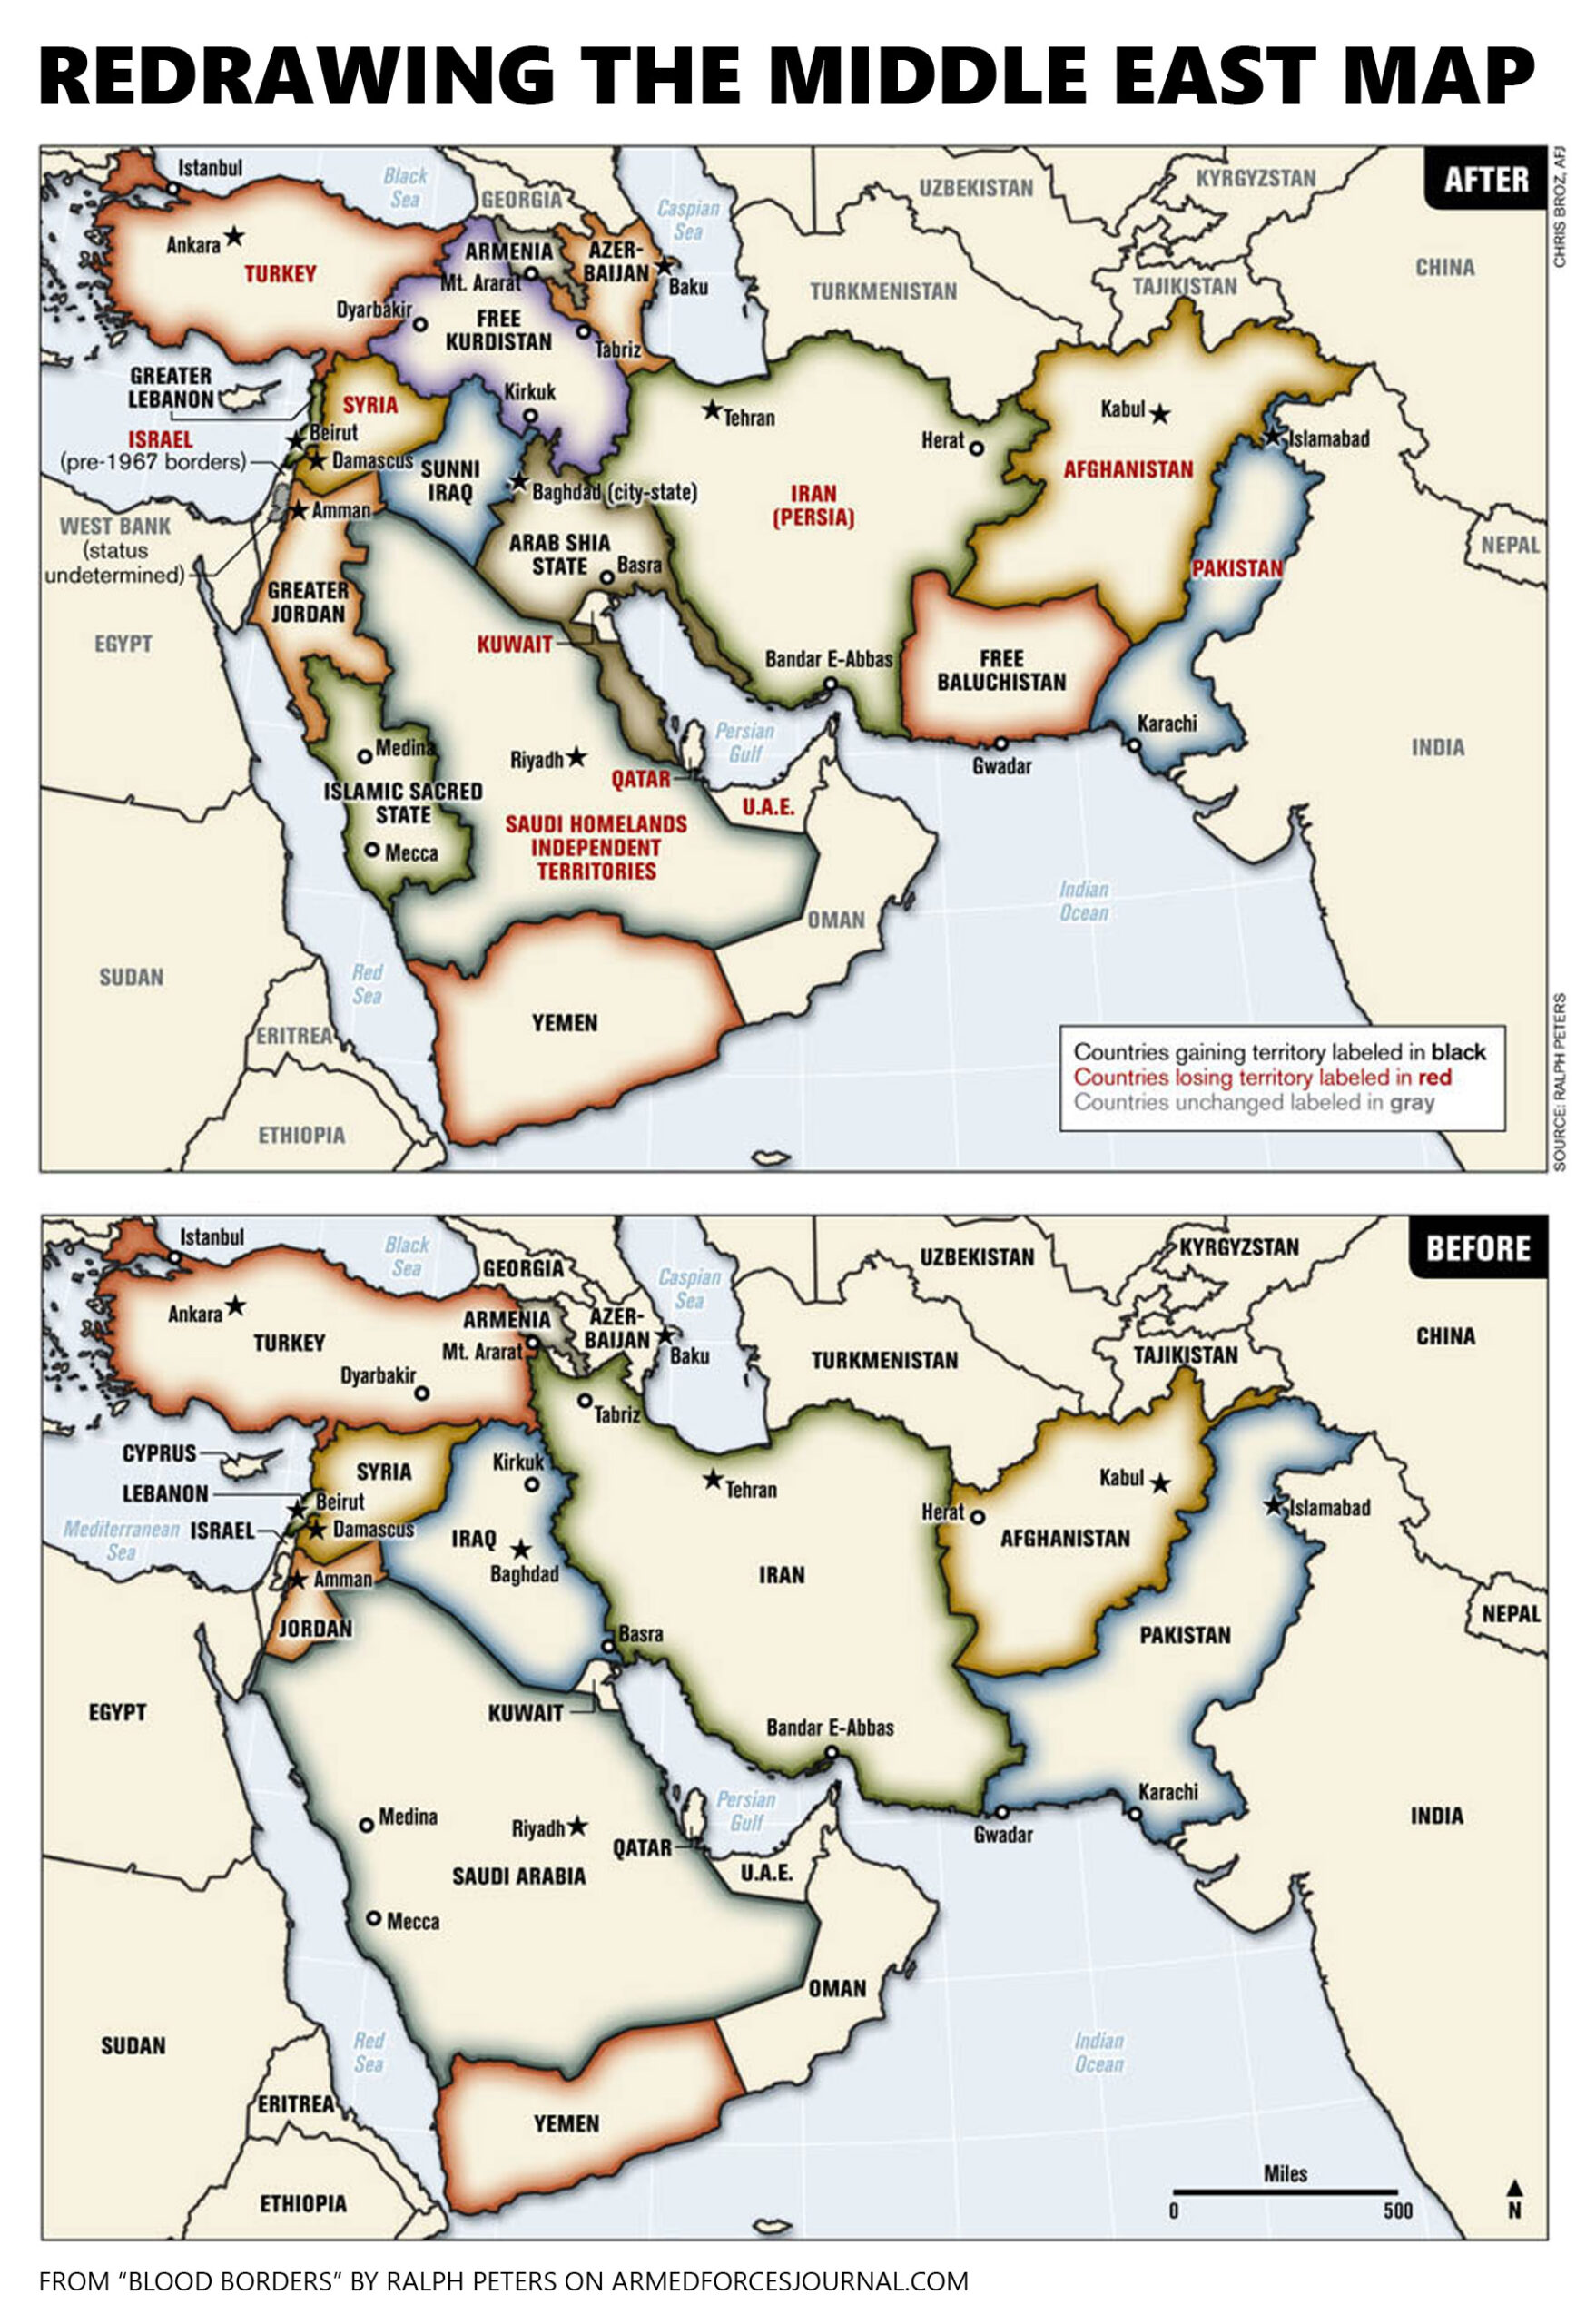 Redrawing the Middle East map